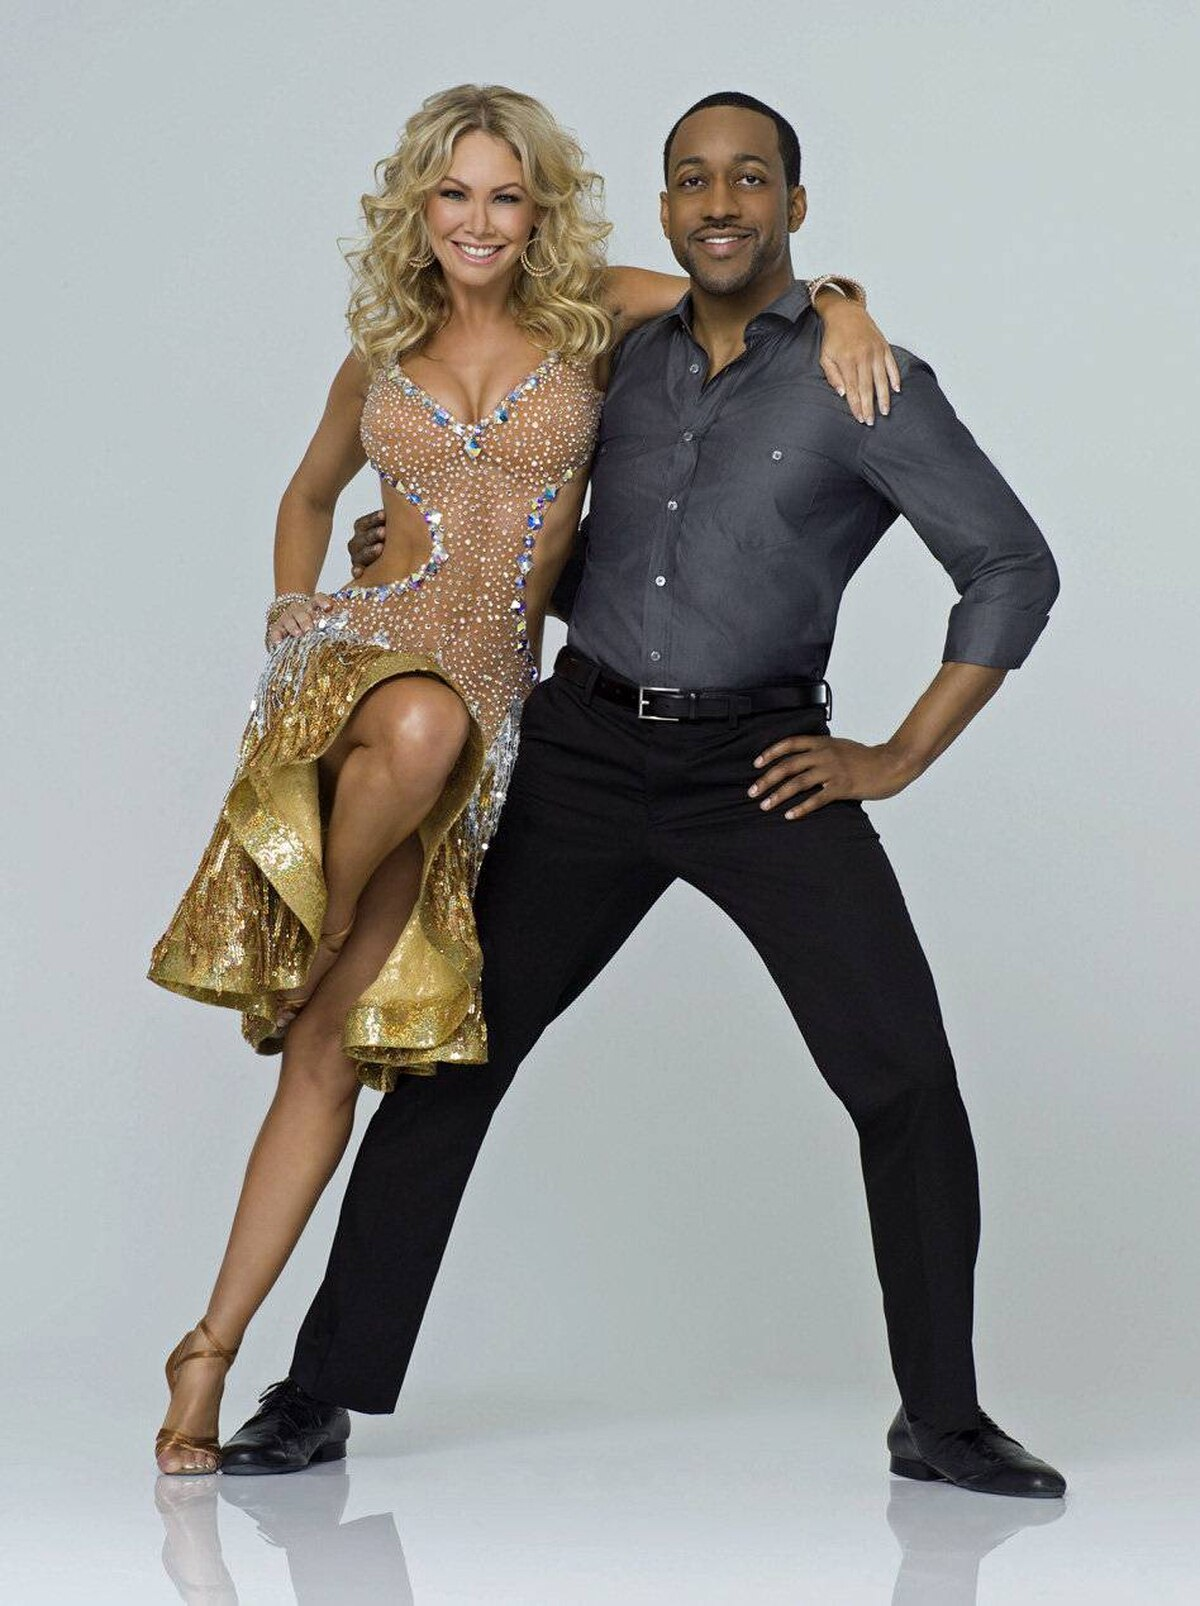 """REALITY Dancing with the Stars ABC, CTV Two, 8 p.m. ET; 5 p.m. PT Dance fever dominates primetime television for the next three months. Launching its 14th season tonight, the reality dance competition returns virtually unchanged from previous editions. Tom Bergeron is still host and the judging panel is still comprised of Carrie Ann Inaba, Len Goodman and Bruno Tonioli. The only variable, of course, being the celebrity contestants and the new season delivers a pretty random group of B-listers. Among the dozen star-hoofers set to trip the light fantastic: singer Gavin DeGraw, NFL star Donald Driver, actress Melissa Gilbert, mezzo soprano Katherine Jenkins, soul singer Gladys Knight, tennis champ Martina Navratilova and talk host Sherri Shepherd. The underdog: Jaleel White, whom viewers over 40 will recall as """"Urkel"""" on Family Matters. Got any cheese?"""